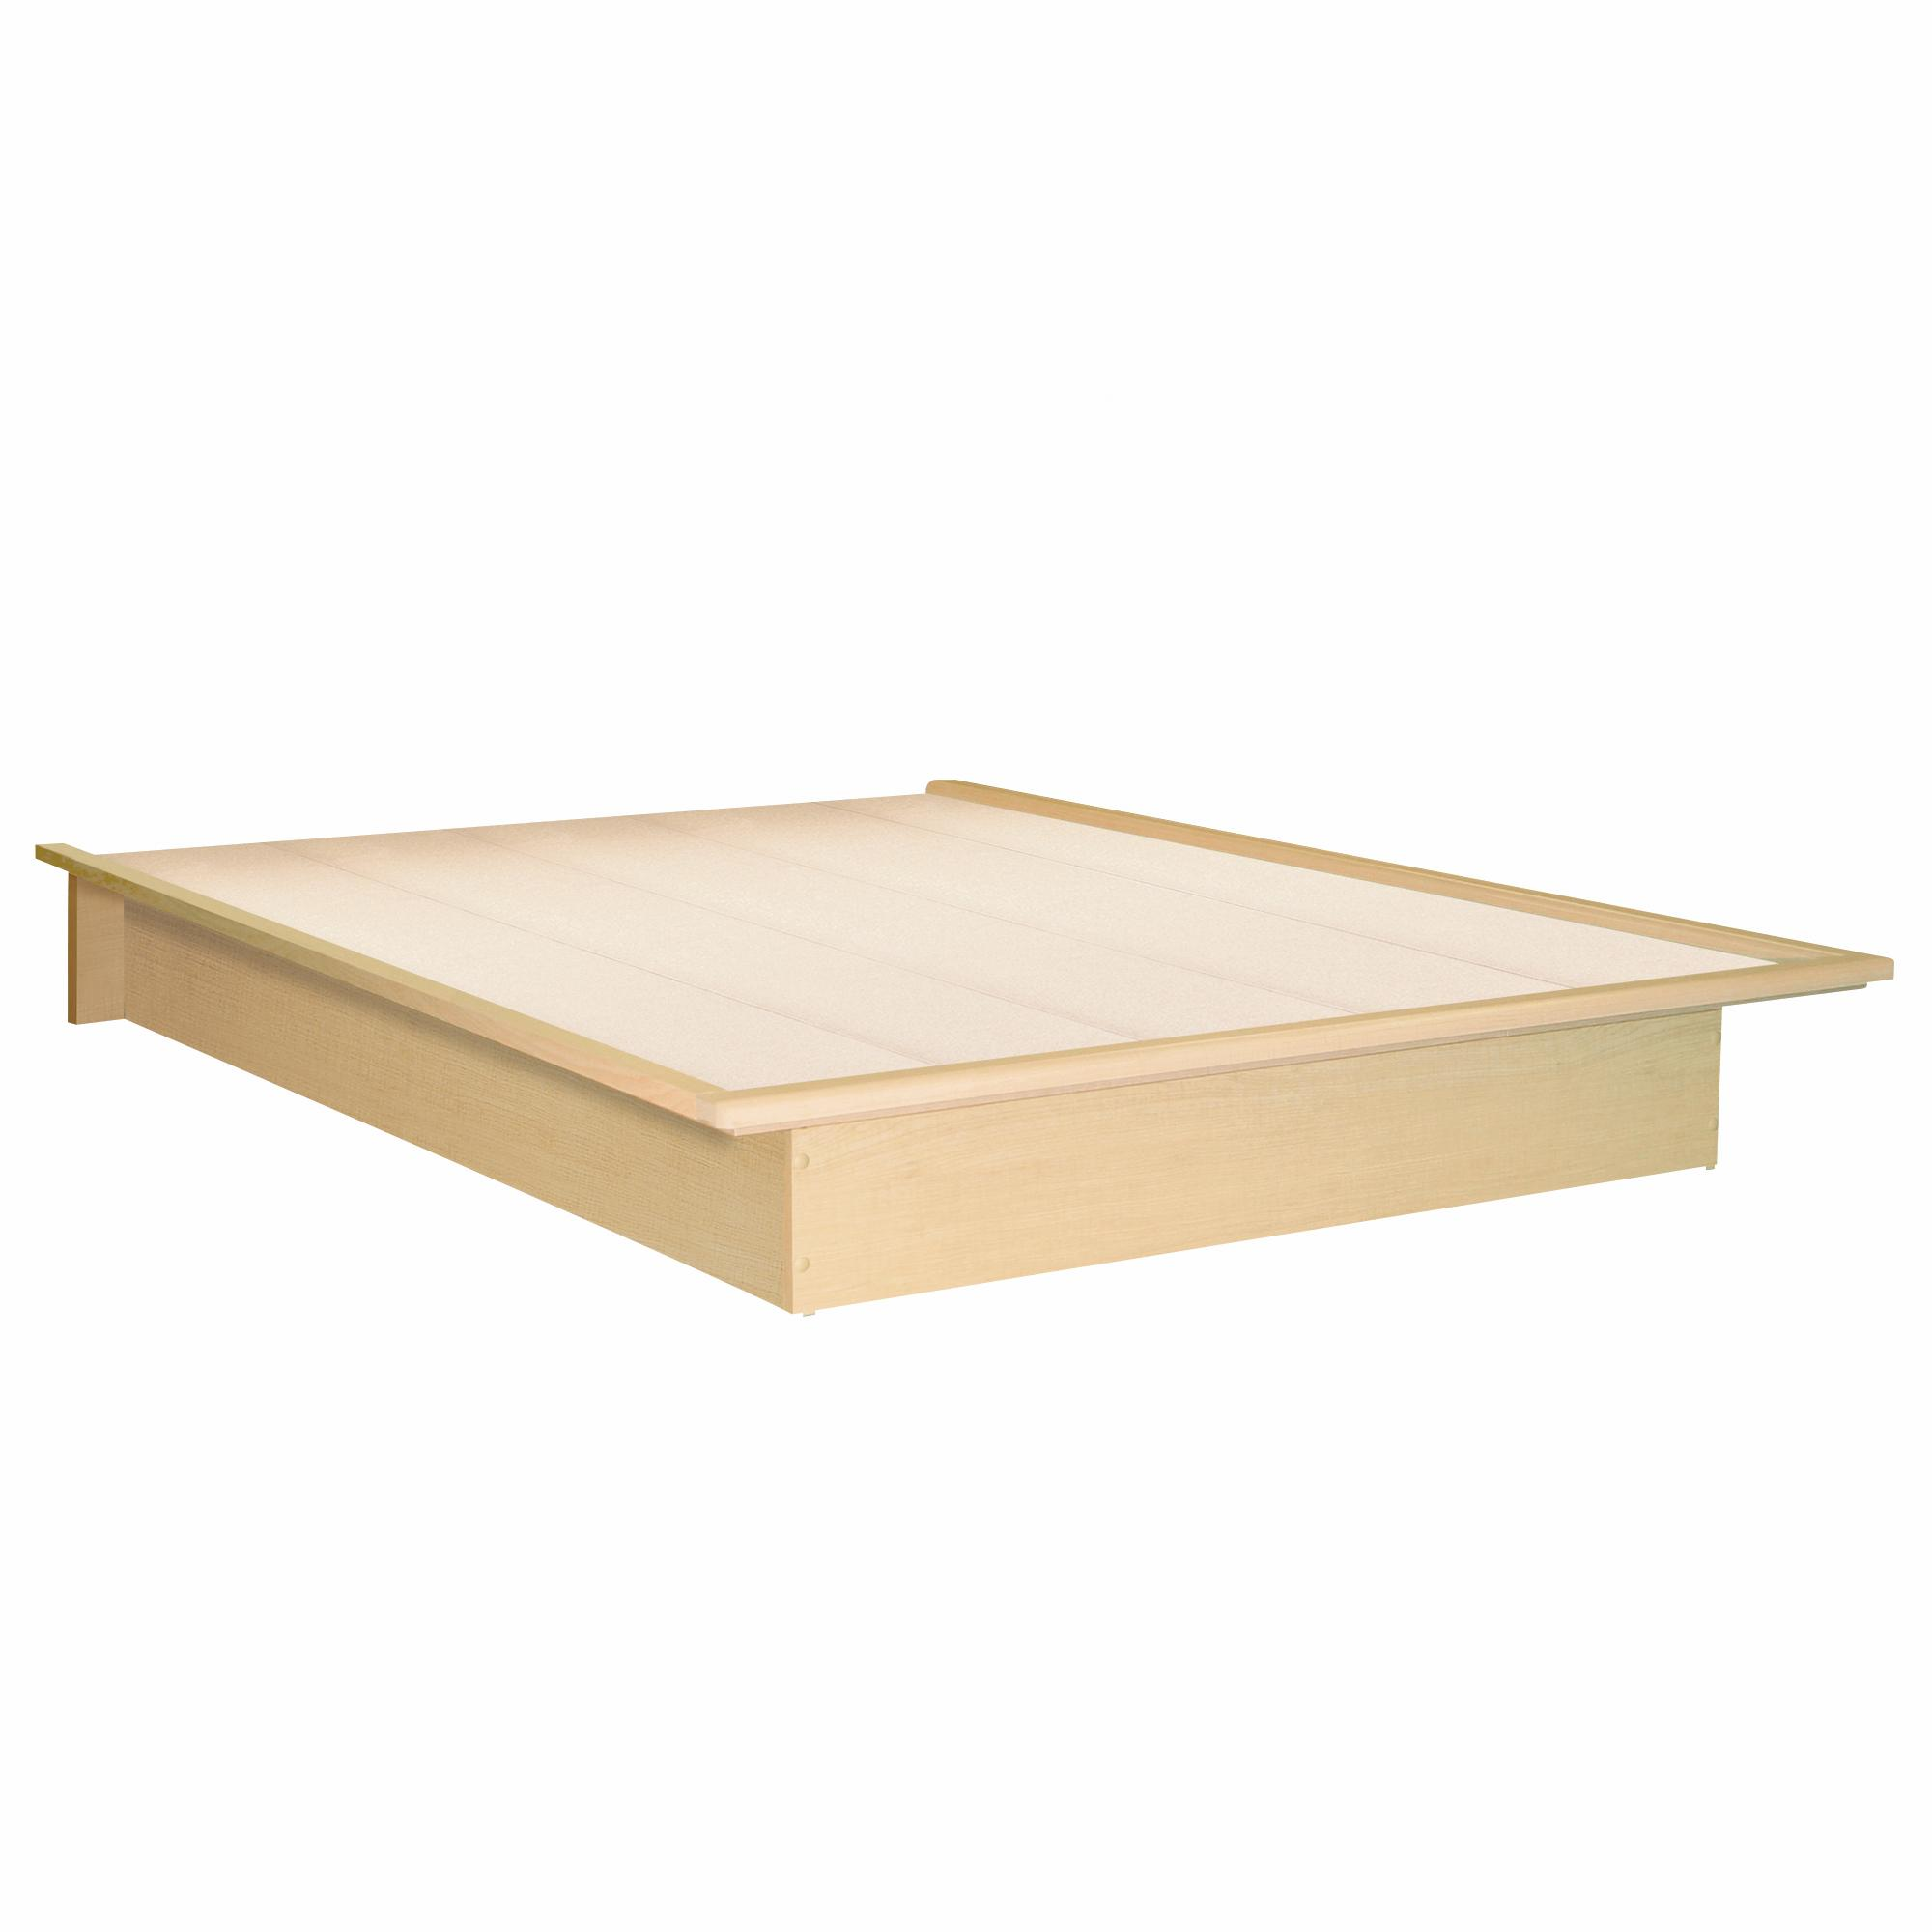 South Shore Copley Full Platform Bed 54 By OJ Commerce